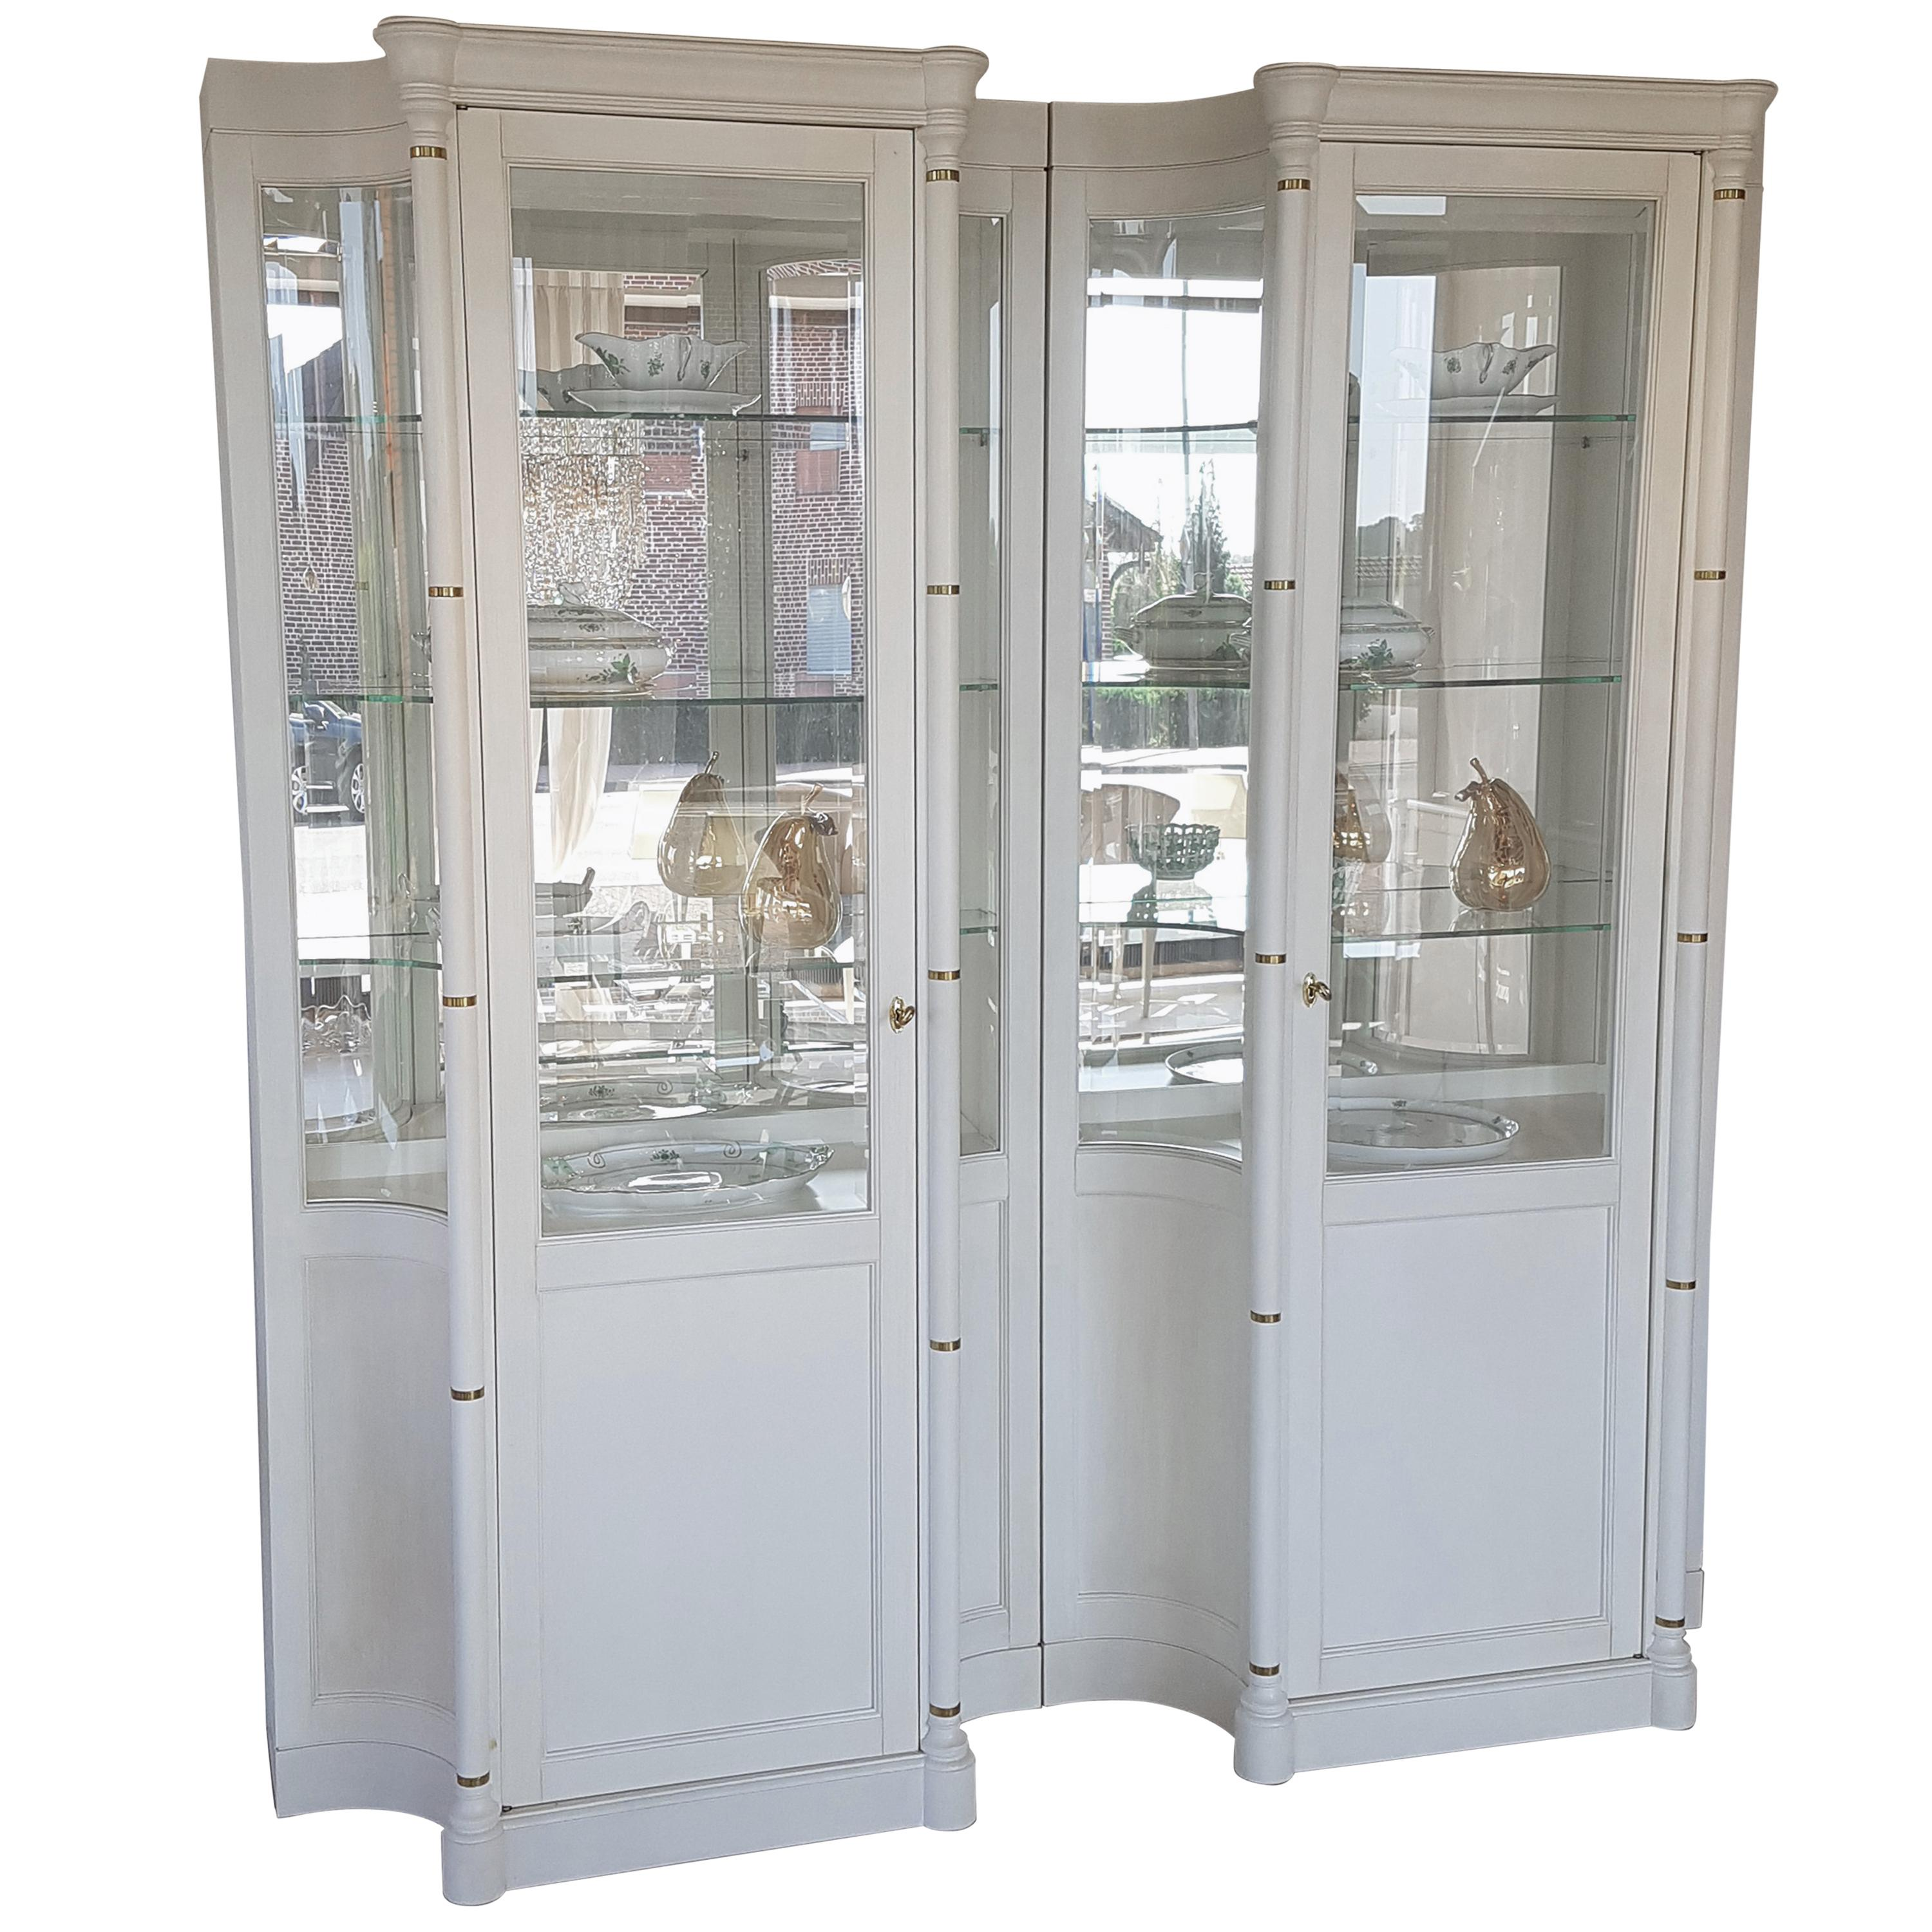 Pair Of Illuminated Old White Display Cabinets Or Vitrines For Sale